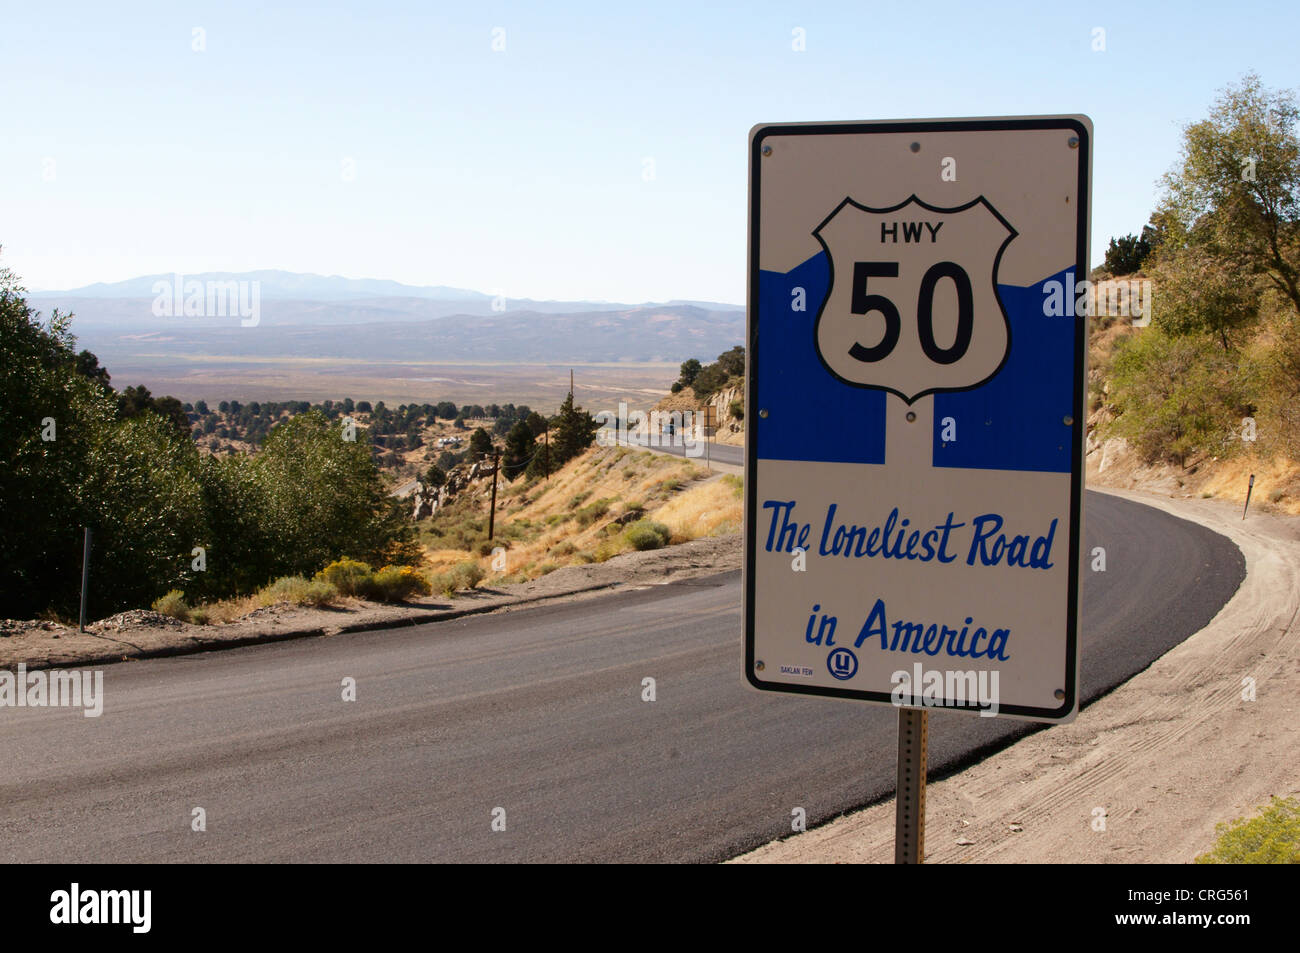 highway hiway 50 loneliest road in america nevada austin nv advice alarm alert caution distress signal example - Stock Image